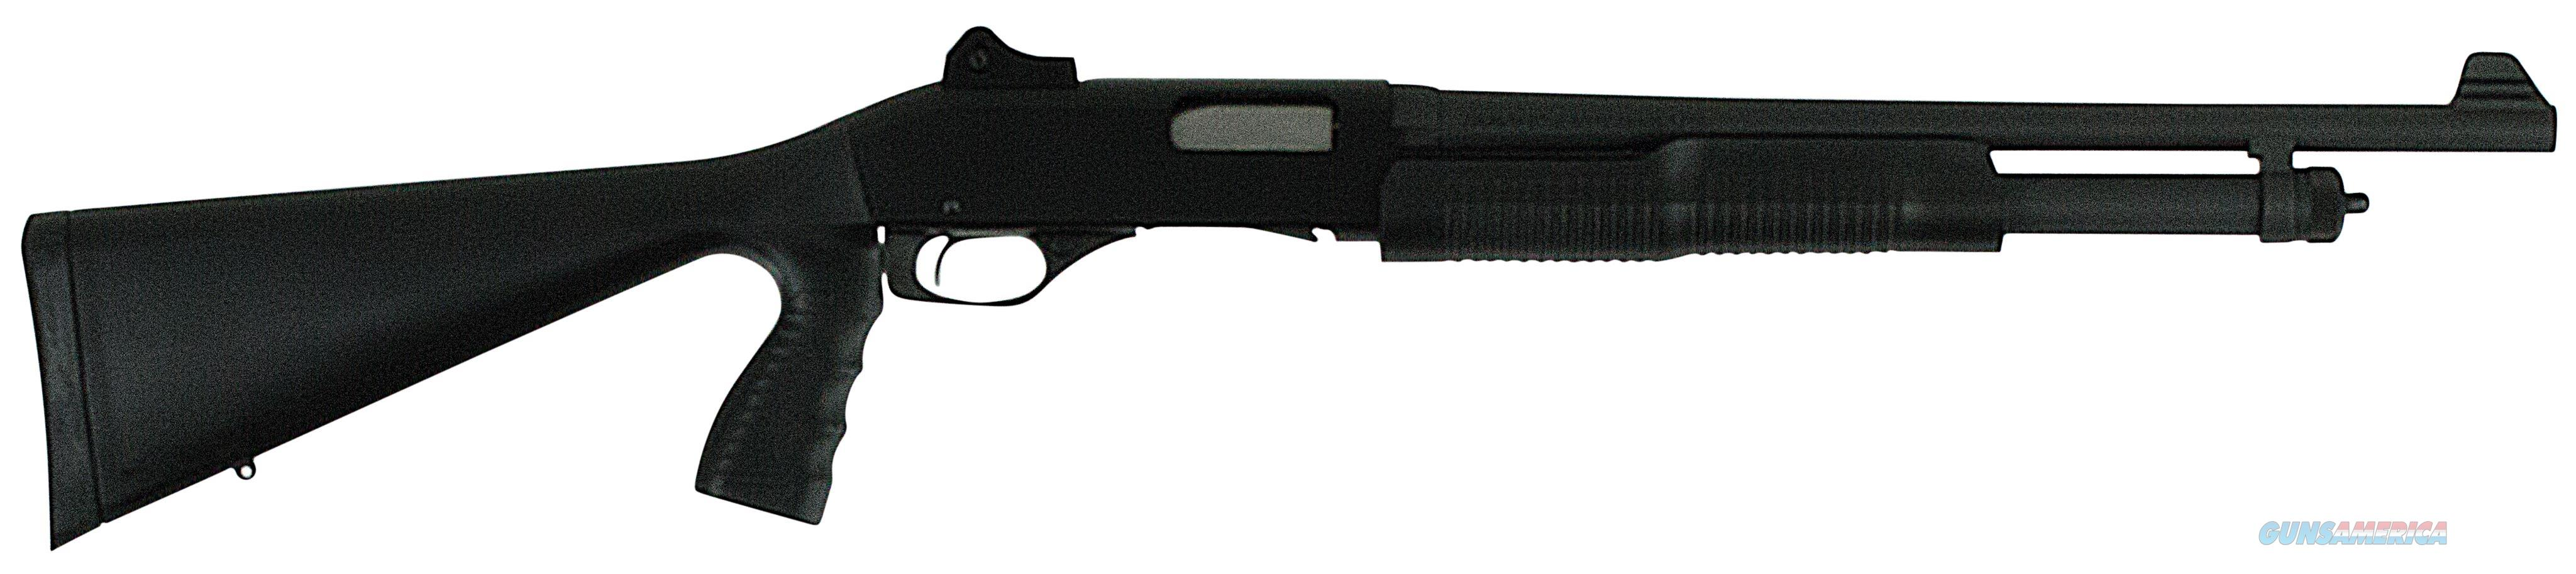 "SAVAGE ARMS 320 SEC 20G 18.5"" 6RD 22439  Guns > Shotguns > Stevens Shotguns"